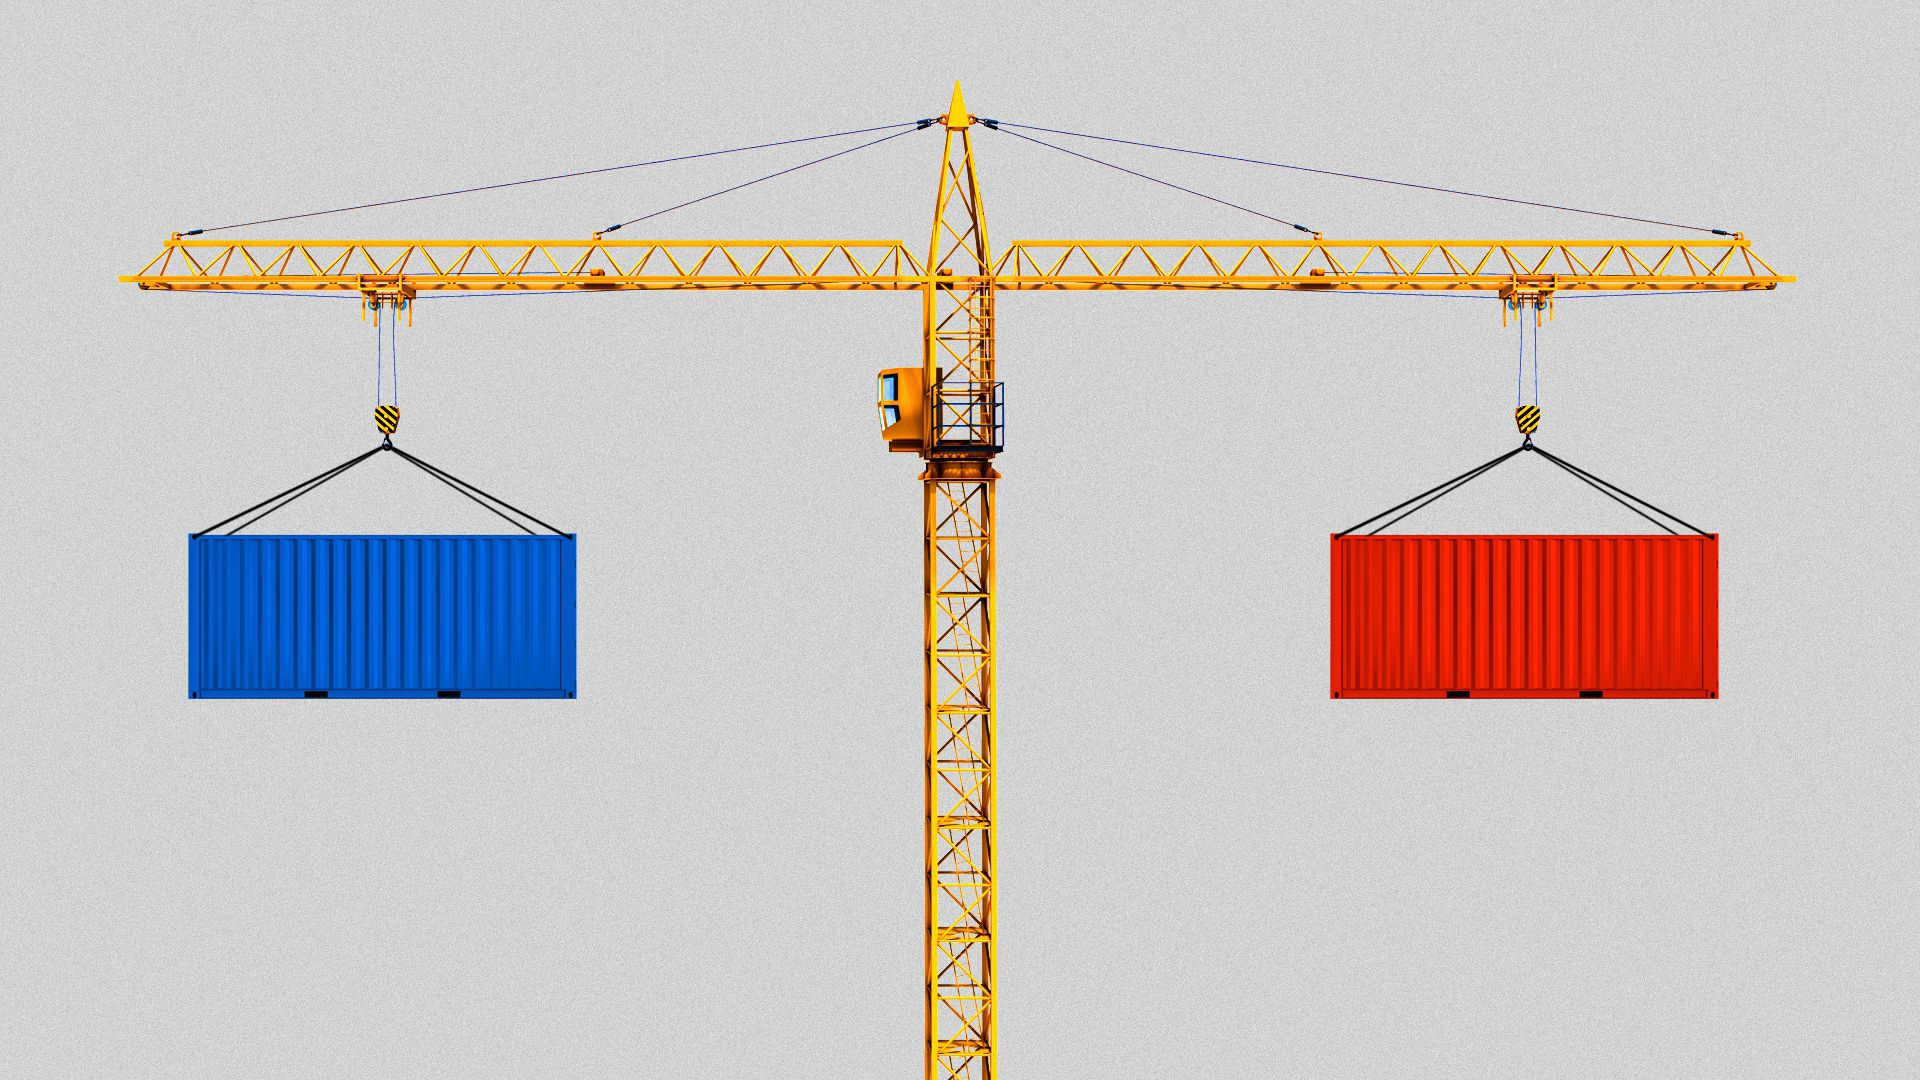 Illustration of crane carrying shipping crates.